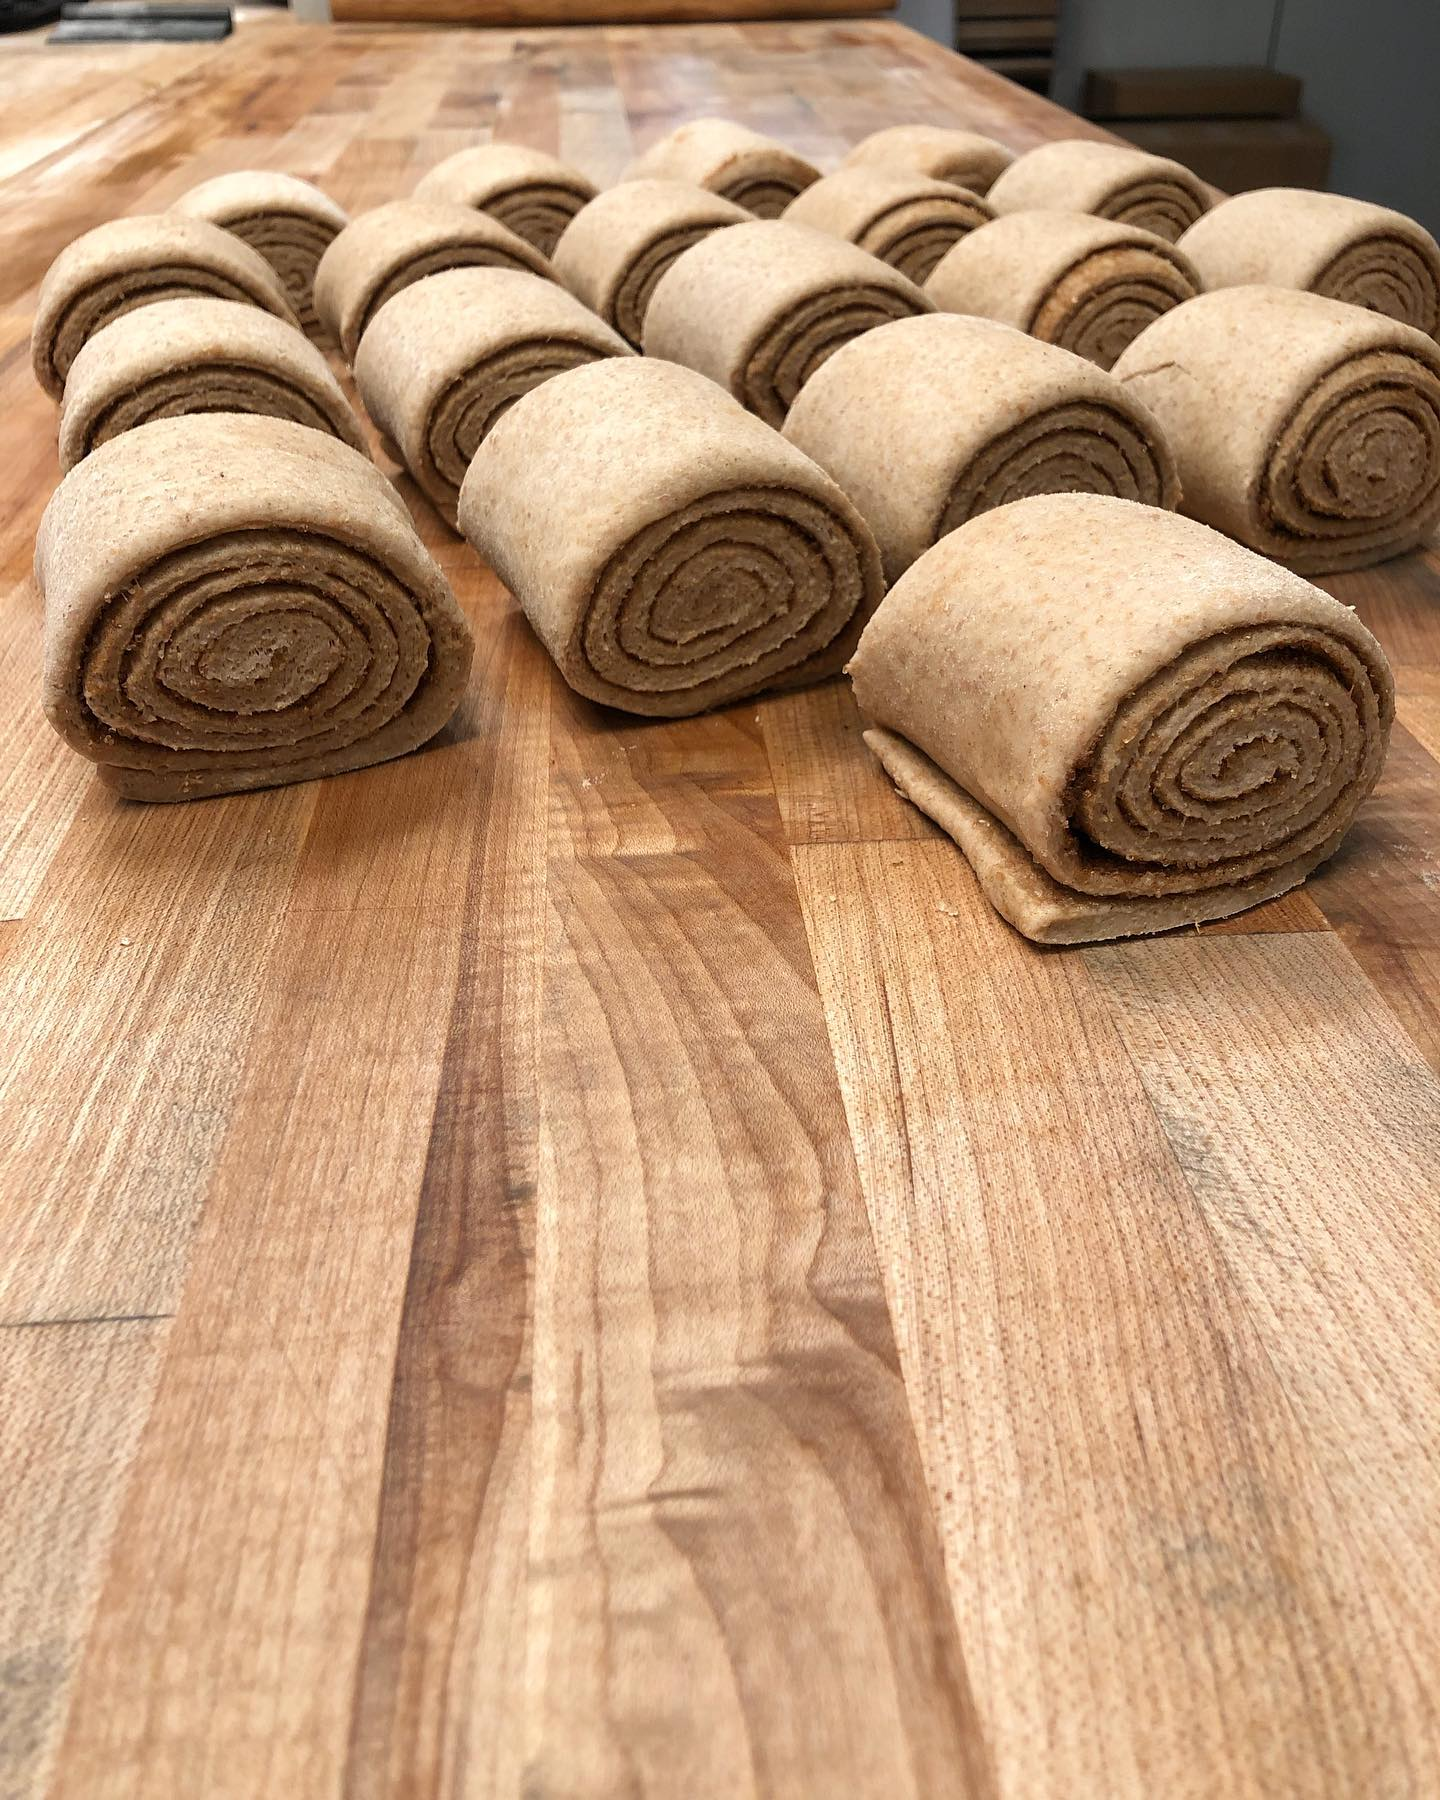 vegan cinnamon buns being rolled ready for baking